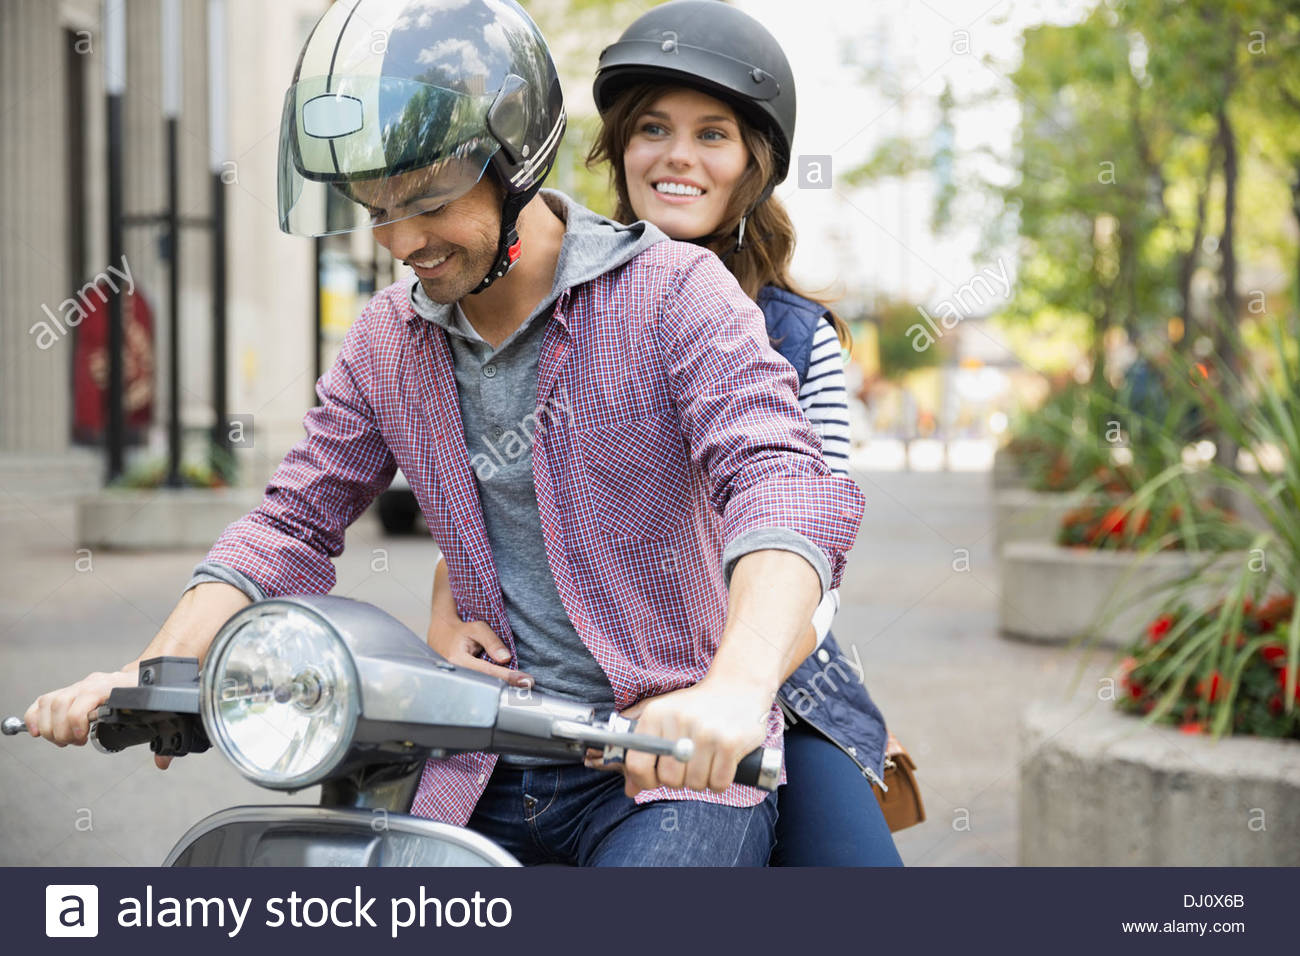 Couple riding scooter - Stock Image